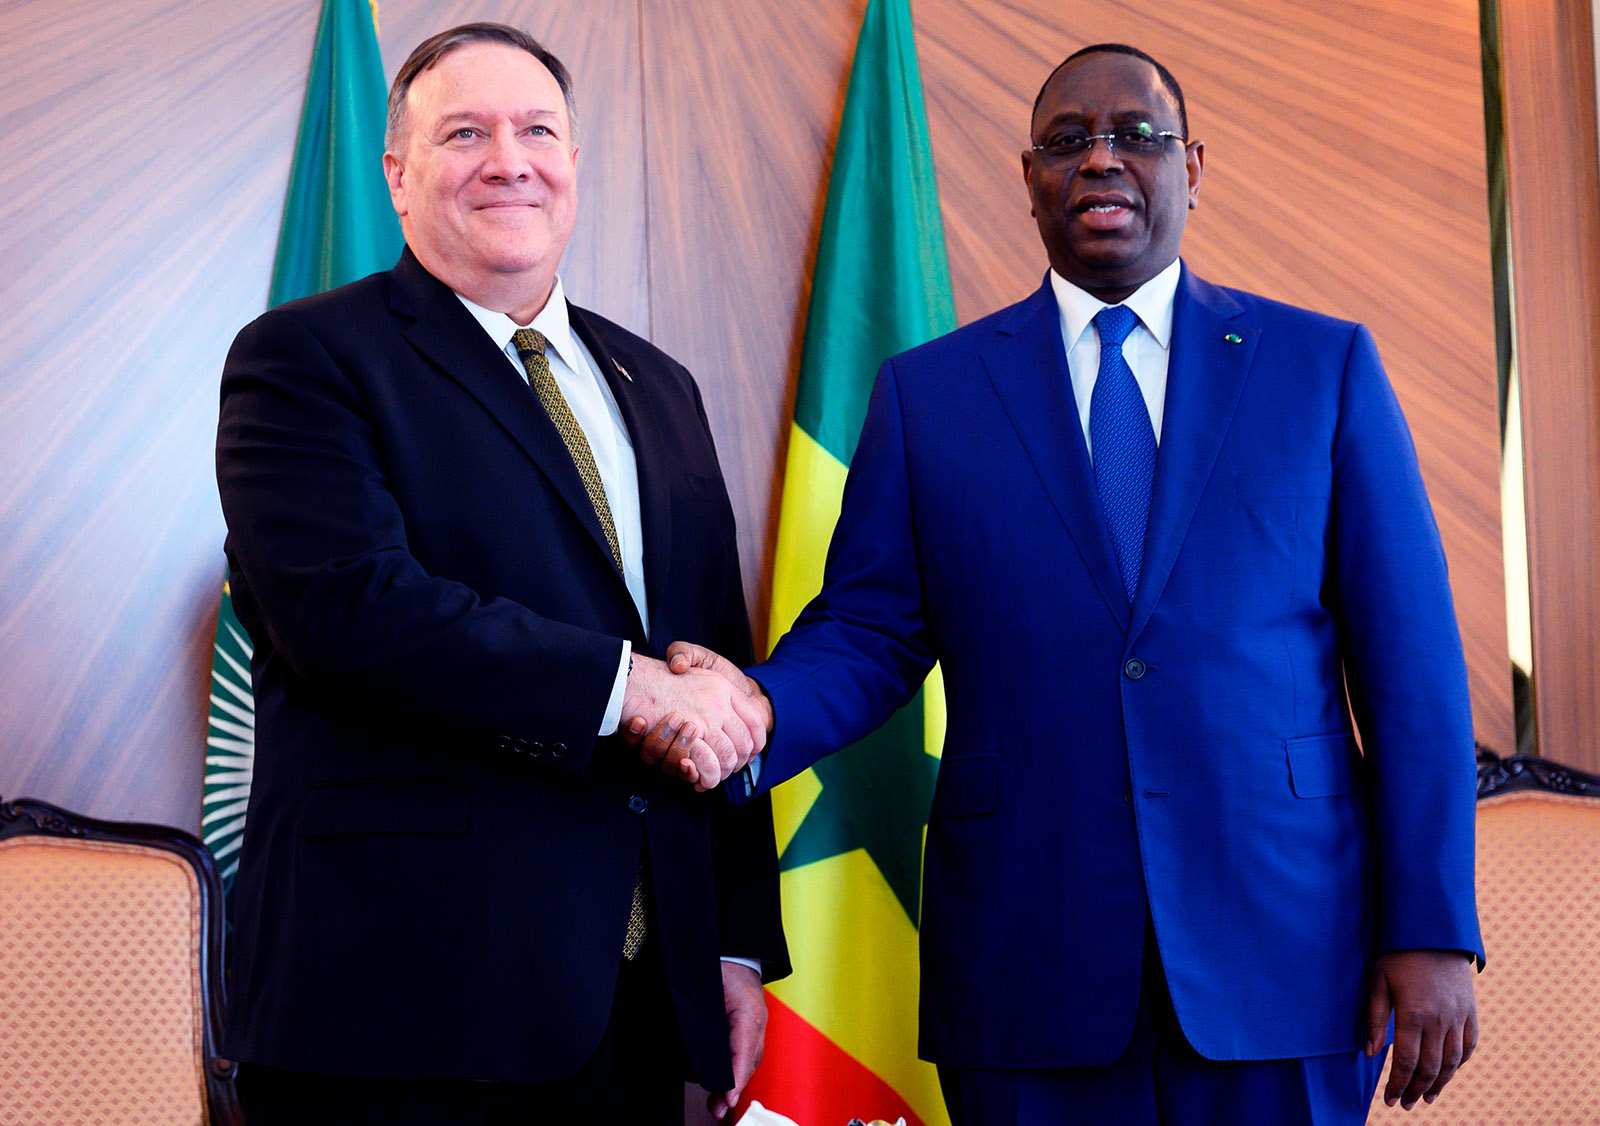 The US Secretary of State's Visit to Africa Is a Good Sign for Business